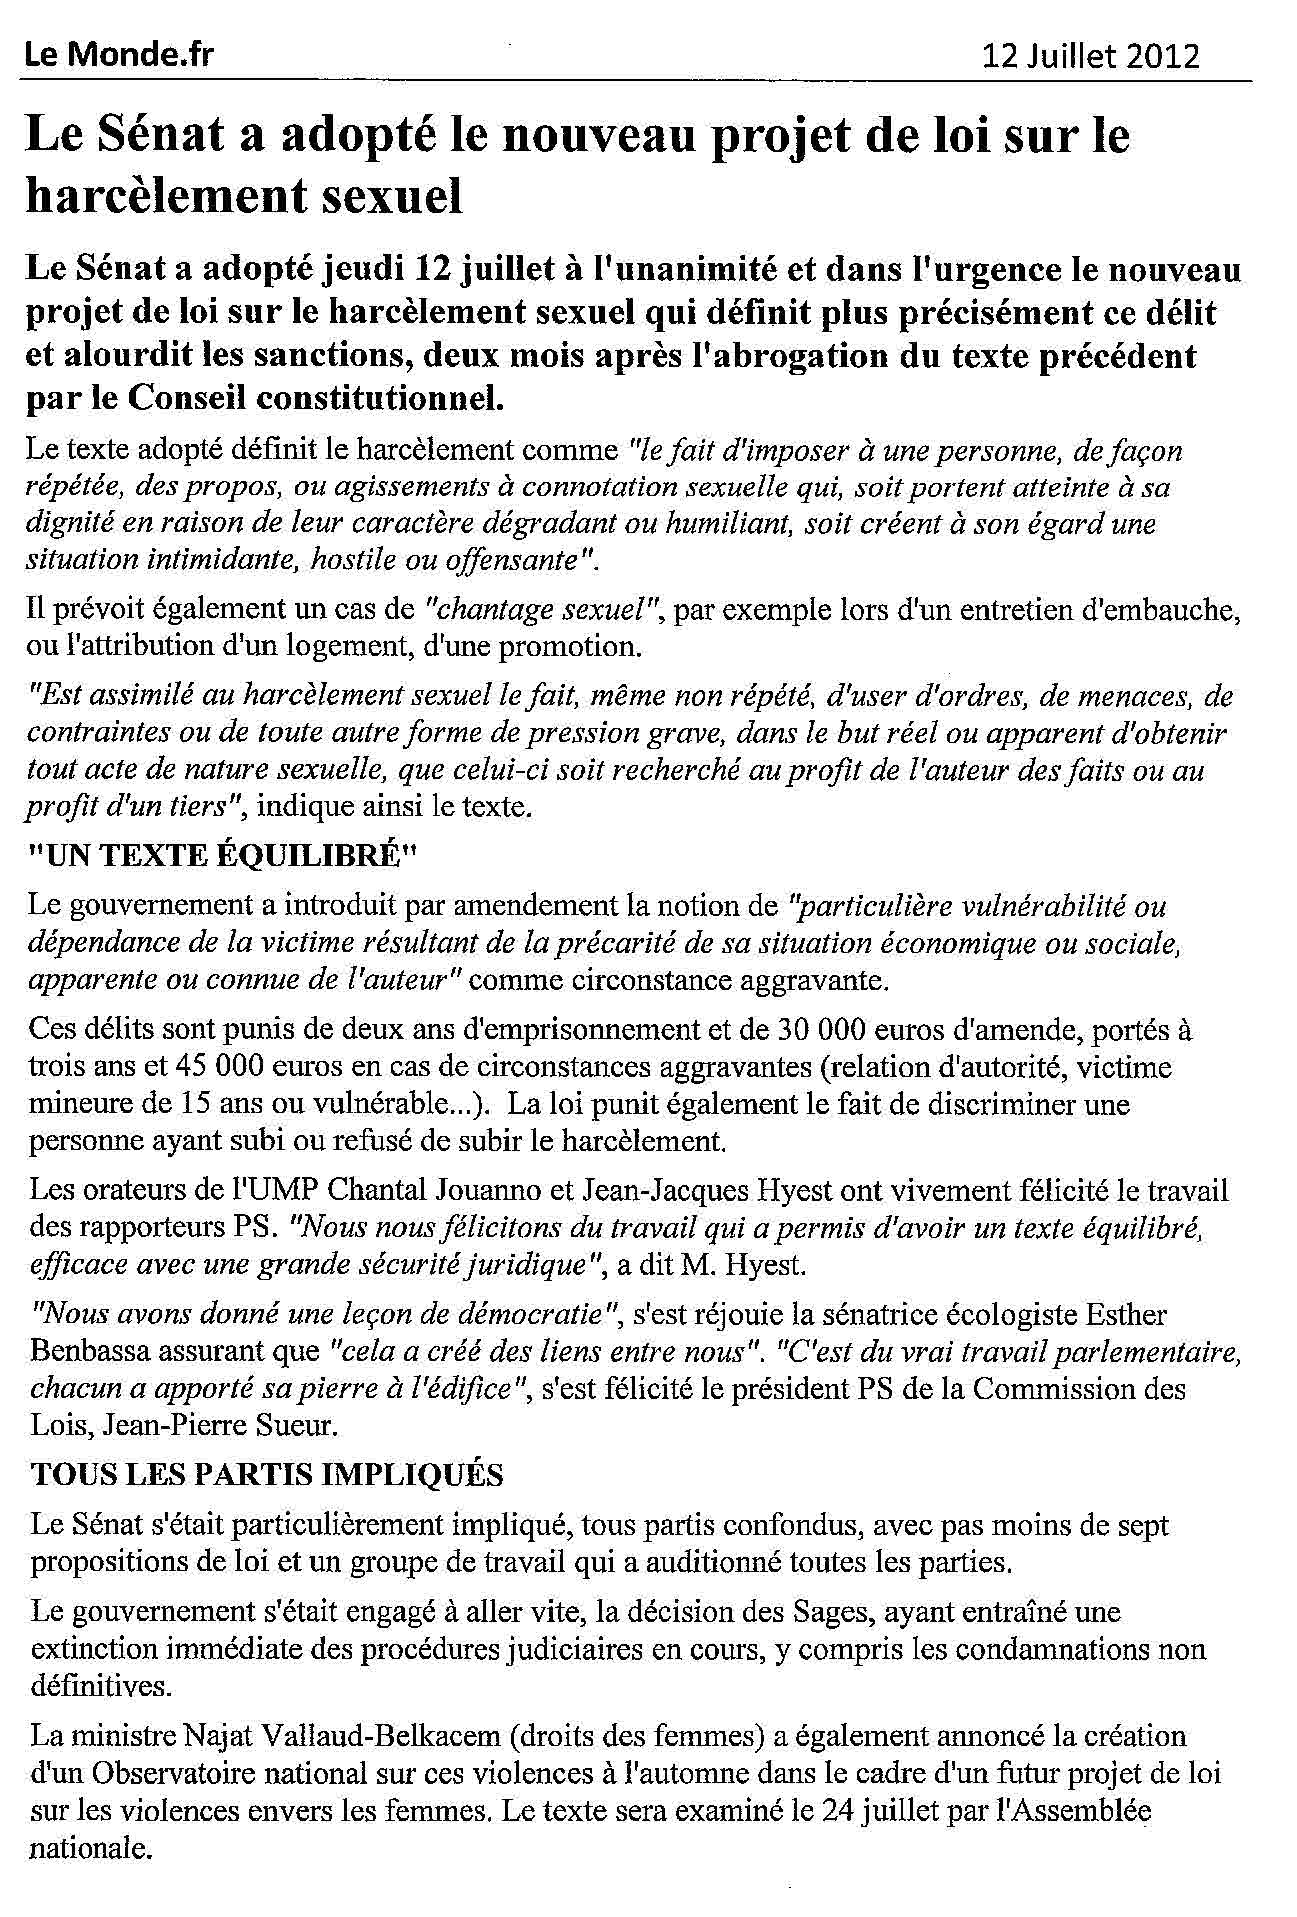 120712_LeMondefr_harcelement